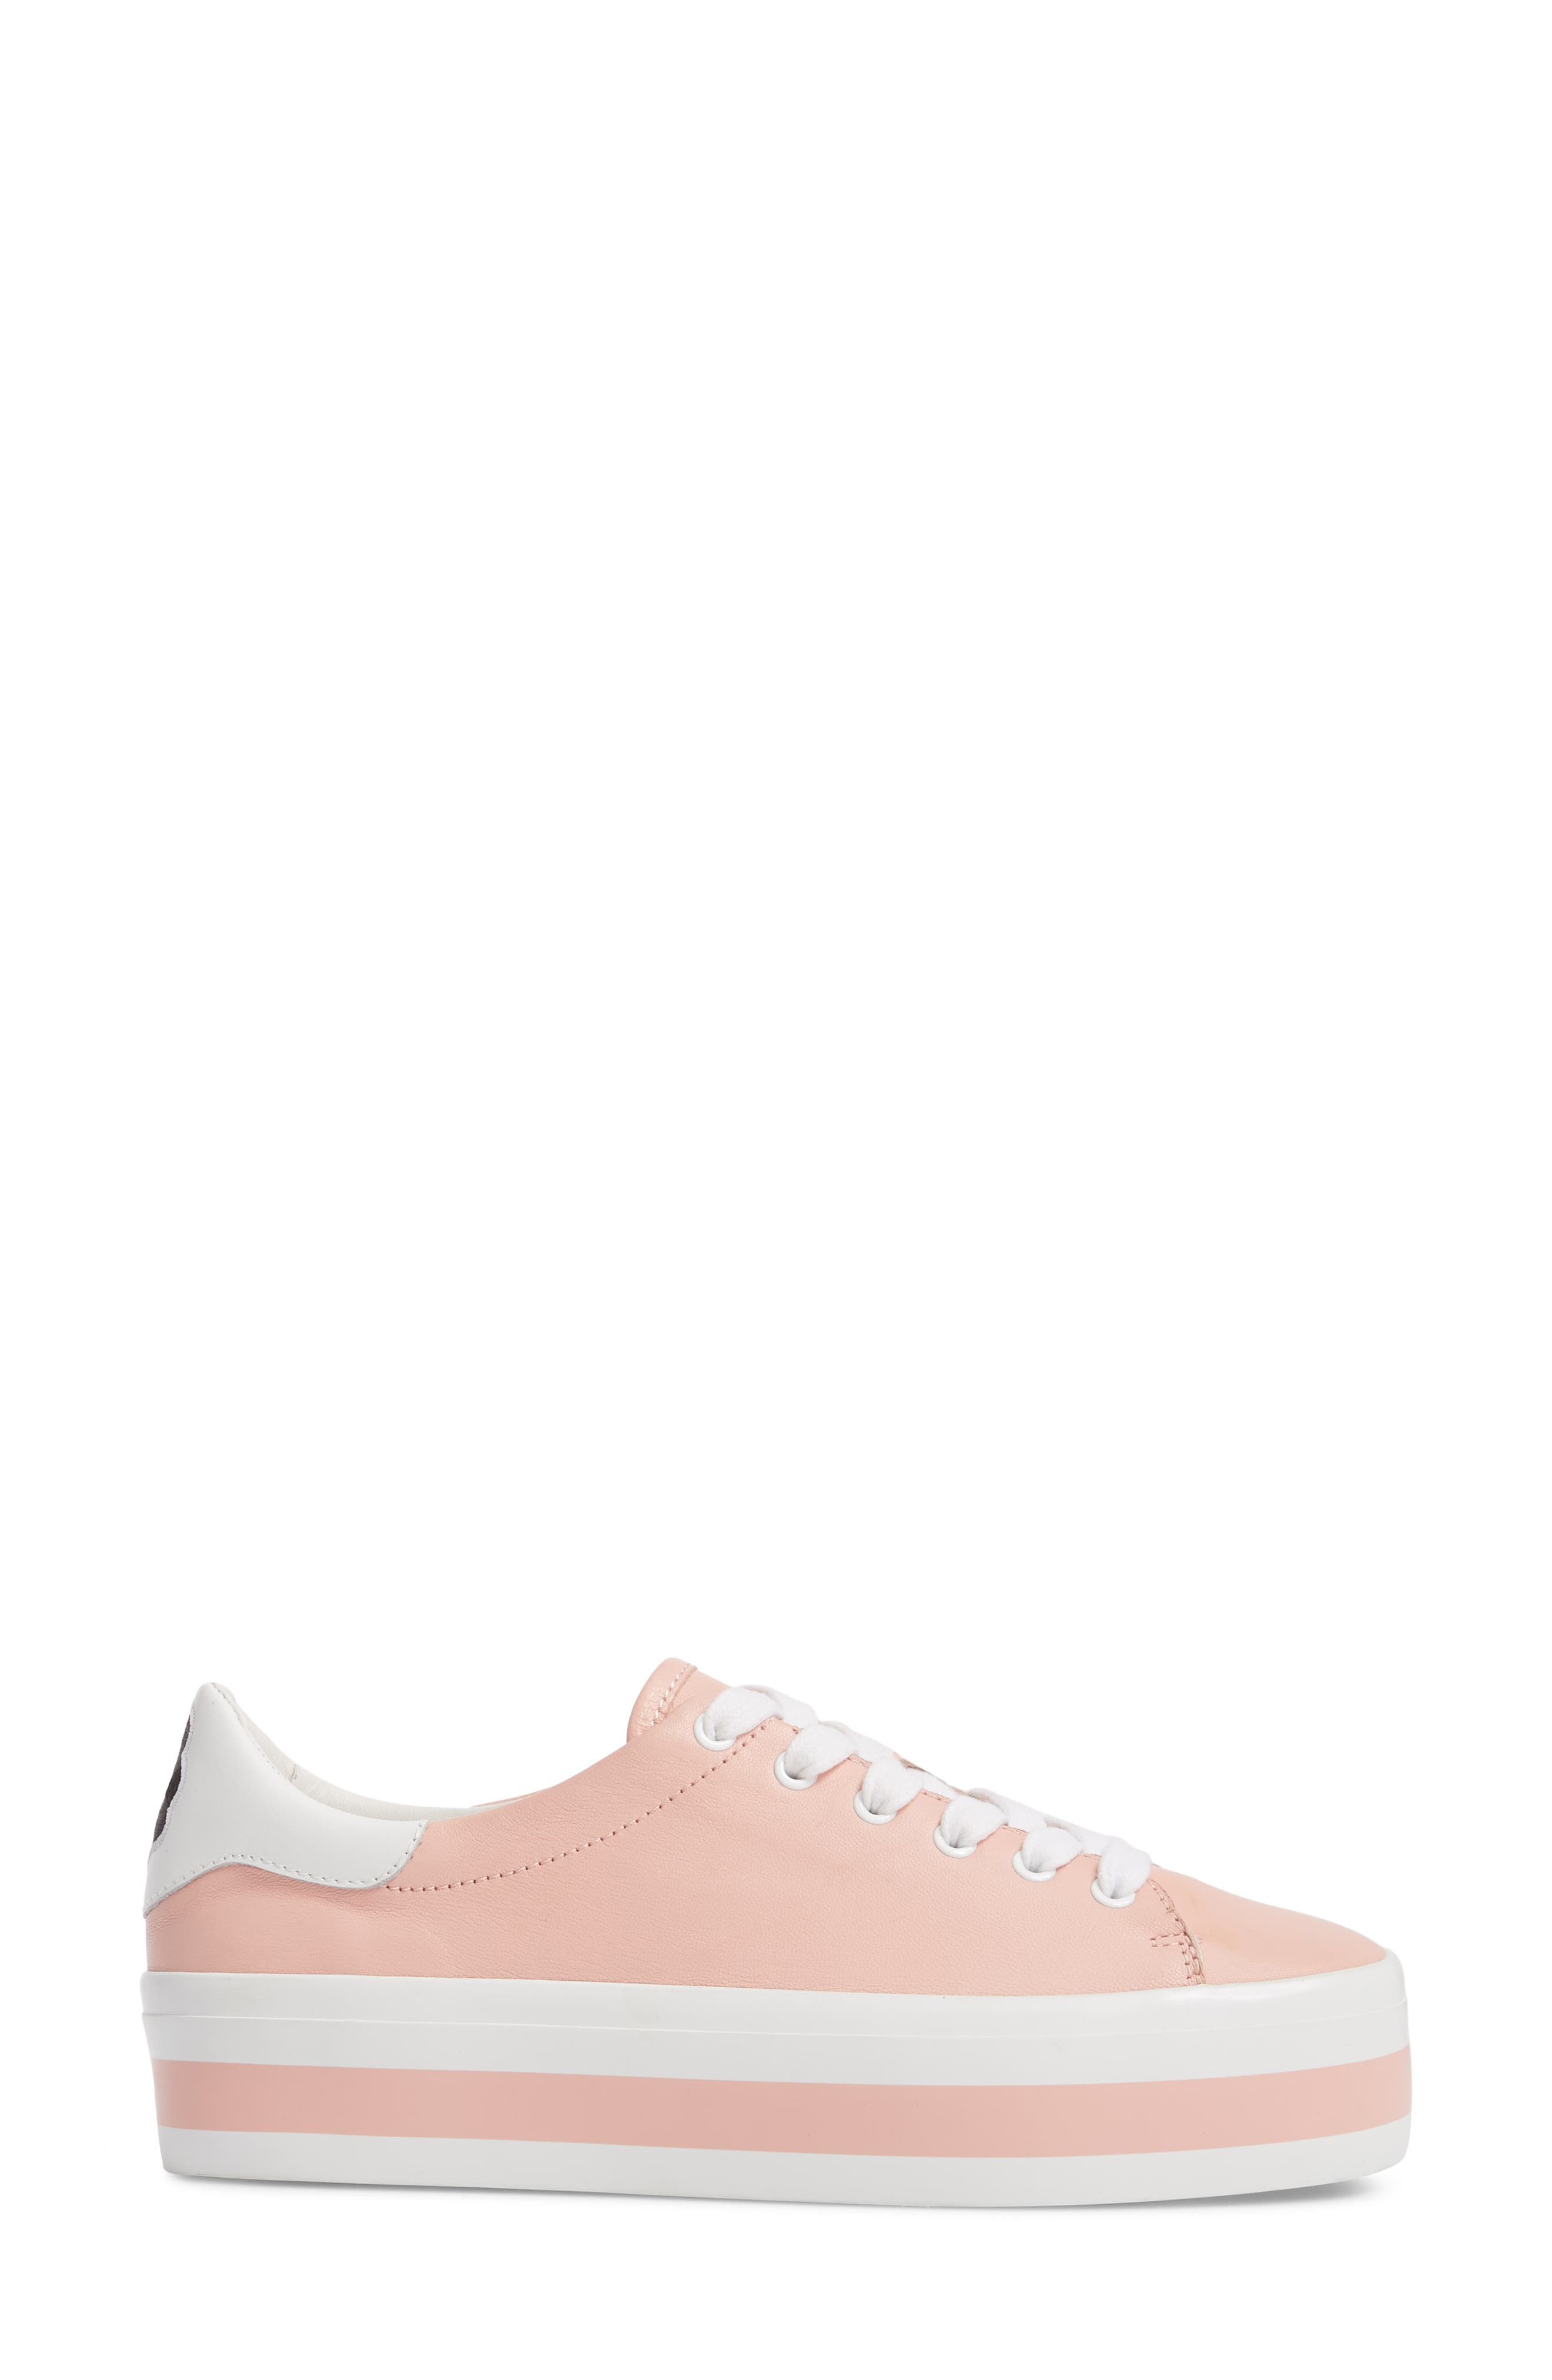 Ezra Flatform Sneaker,                             Alternate thumbnail 3, color,                             Perfect Pink / Pure White